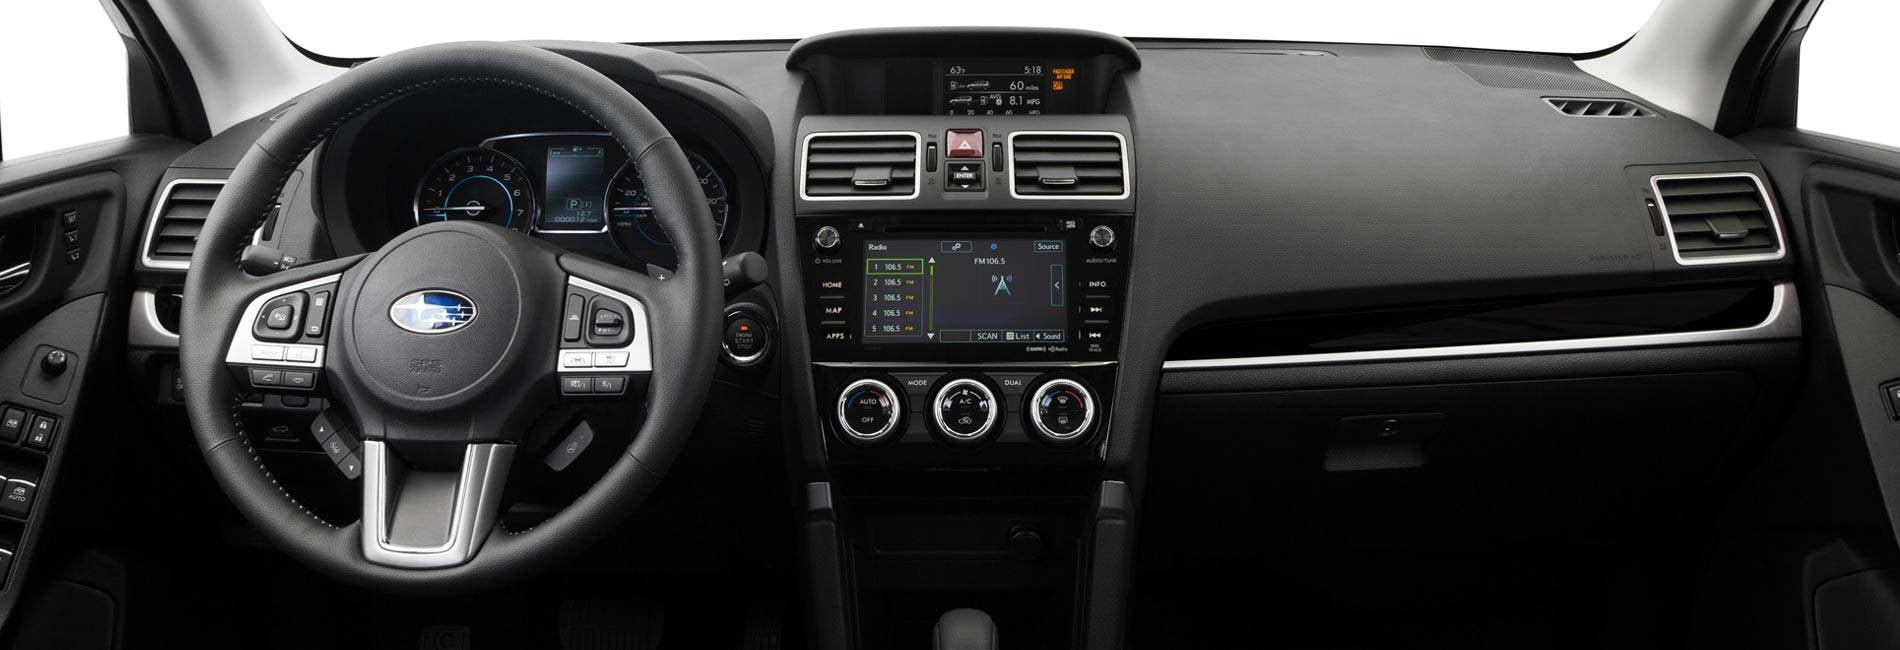 2020 Subaru Forester Interior Features